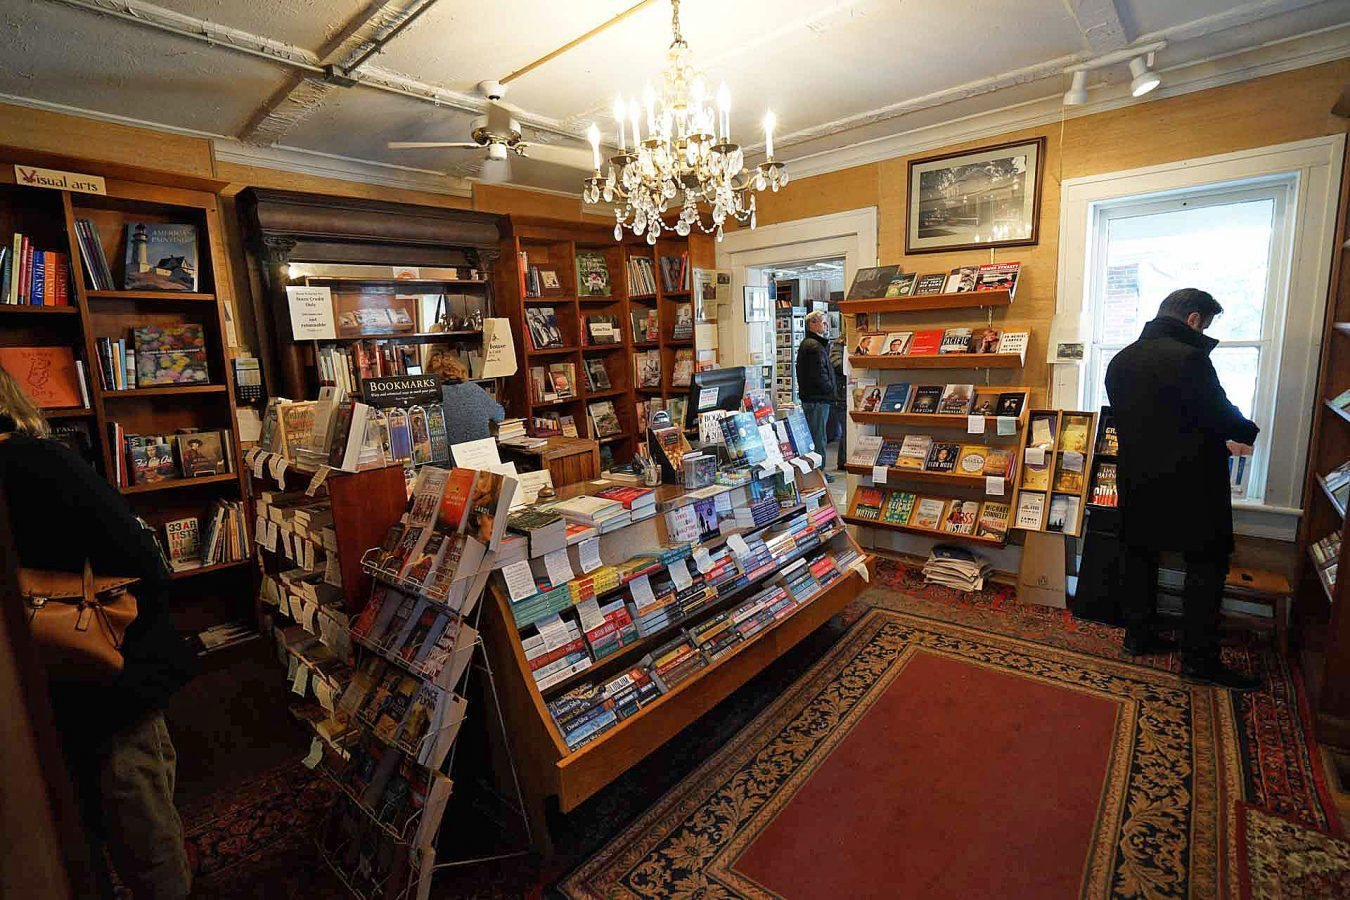 st-charles-il-town-house-books